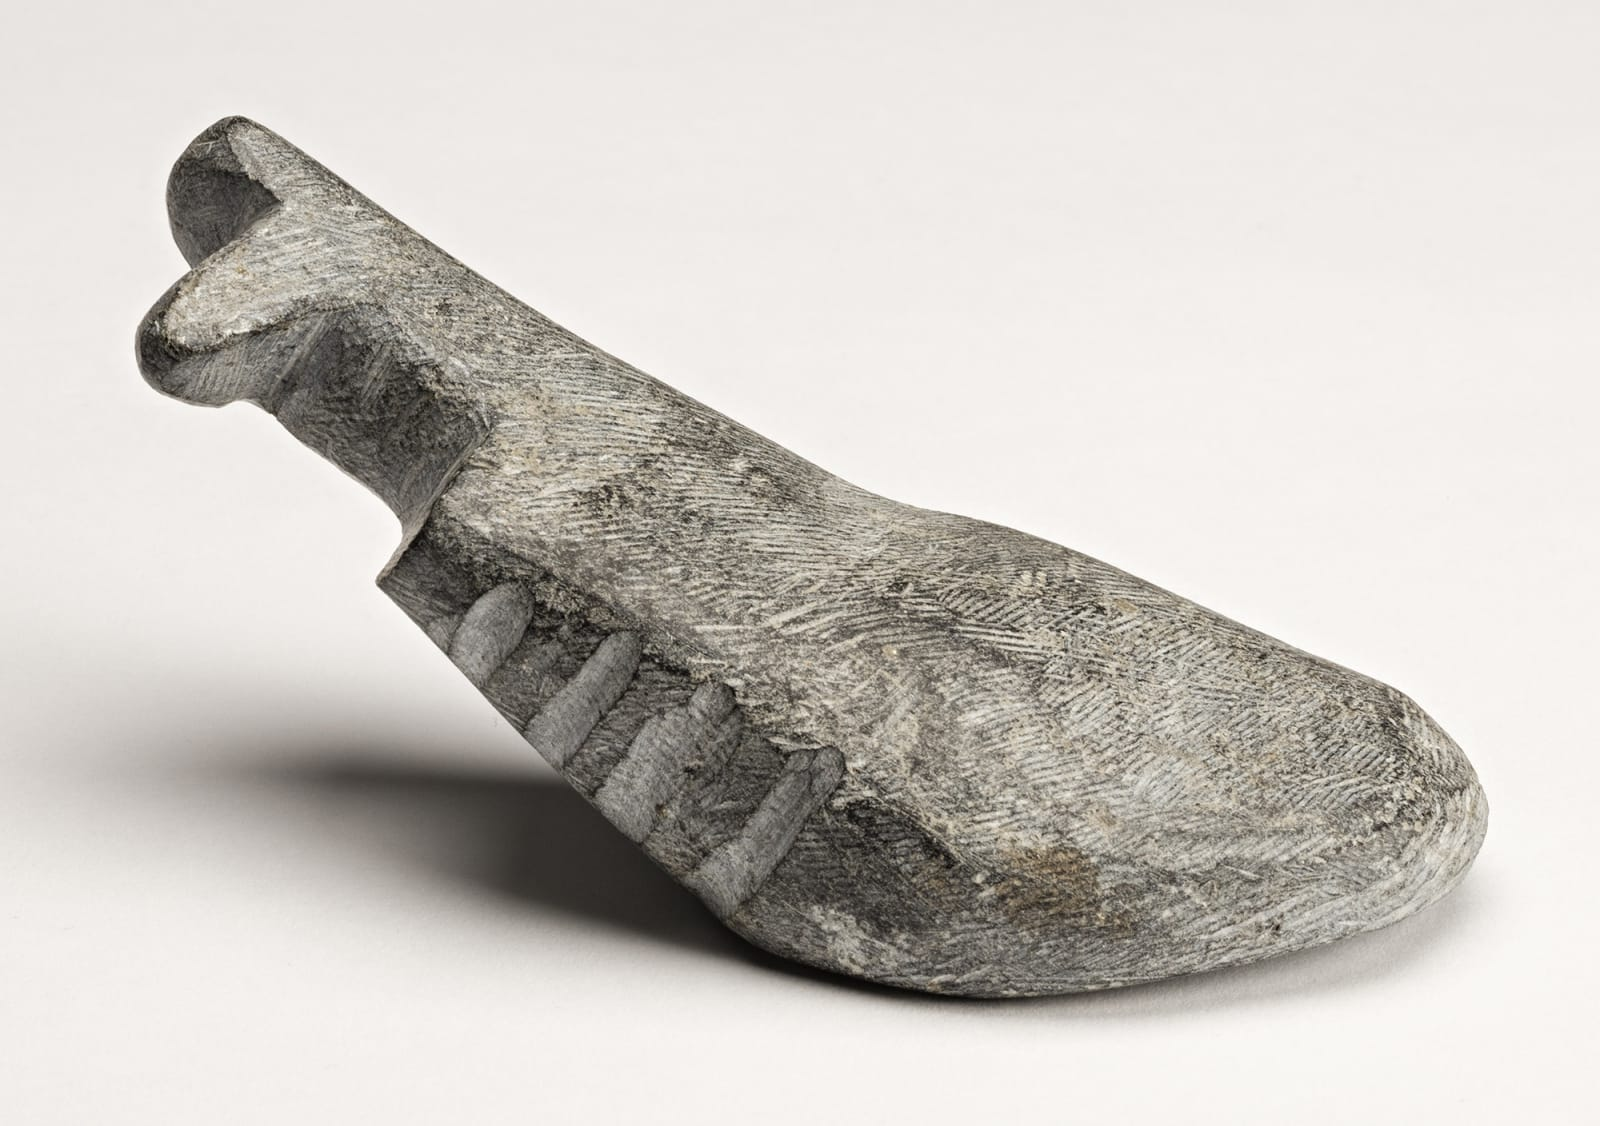 Lot 115 ANDY MIKI (1918-1983) ARVIAT (ESKIMO POINT) Reclining Animal, early-mid 1970s stone, 2.25 x 5.5 x 2 in (5.7 x 14 x 5.1 cm) Estimate: $1,800— $2,800 price realized: $3,600